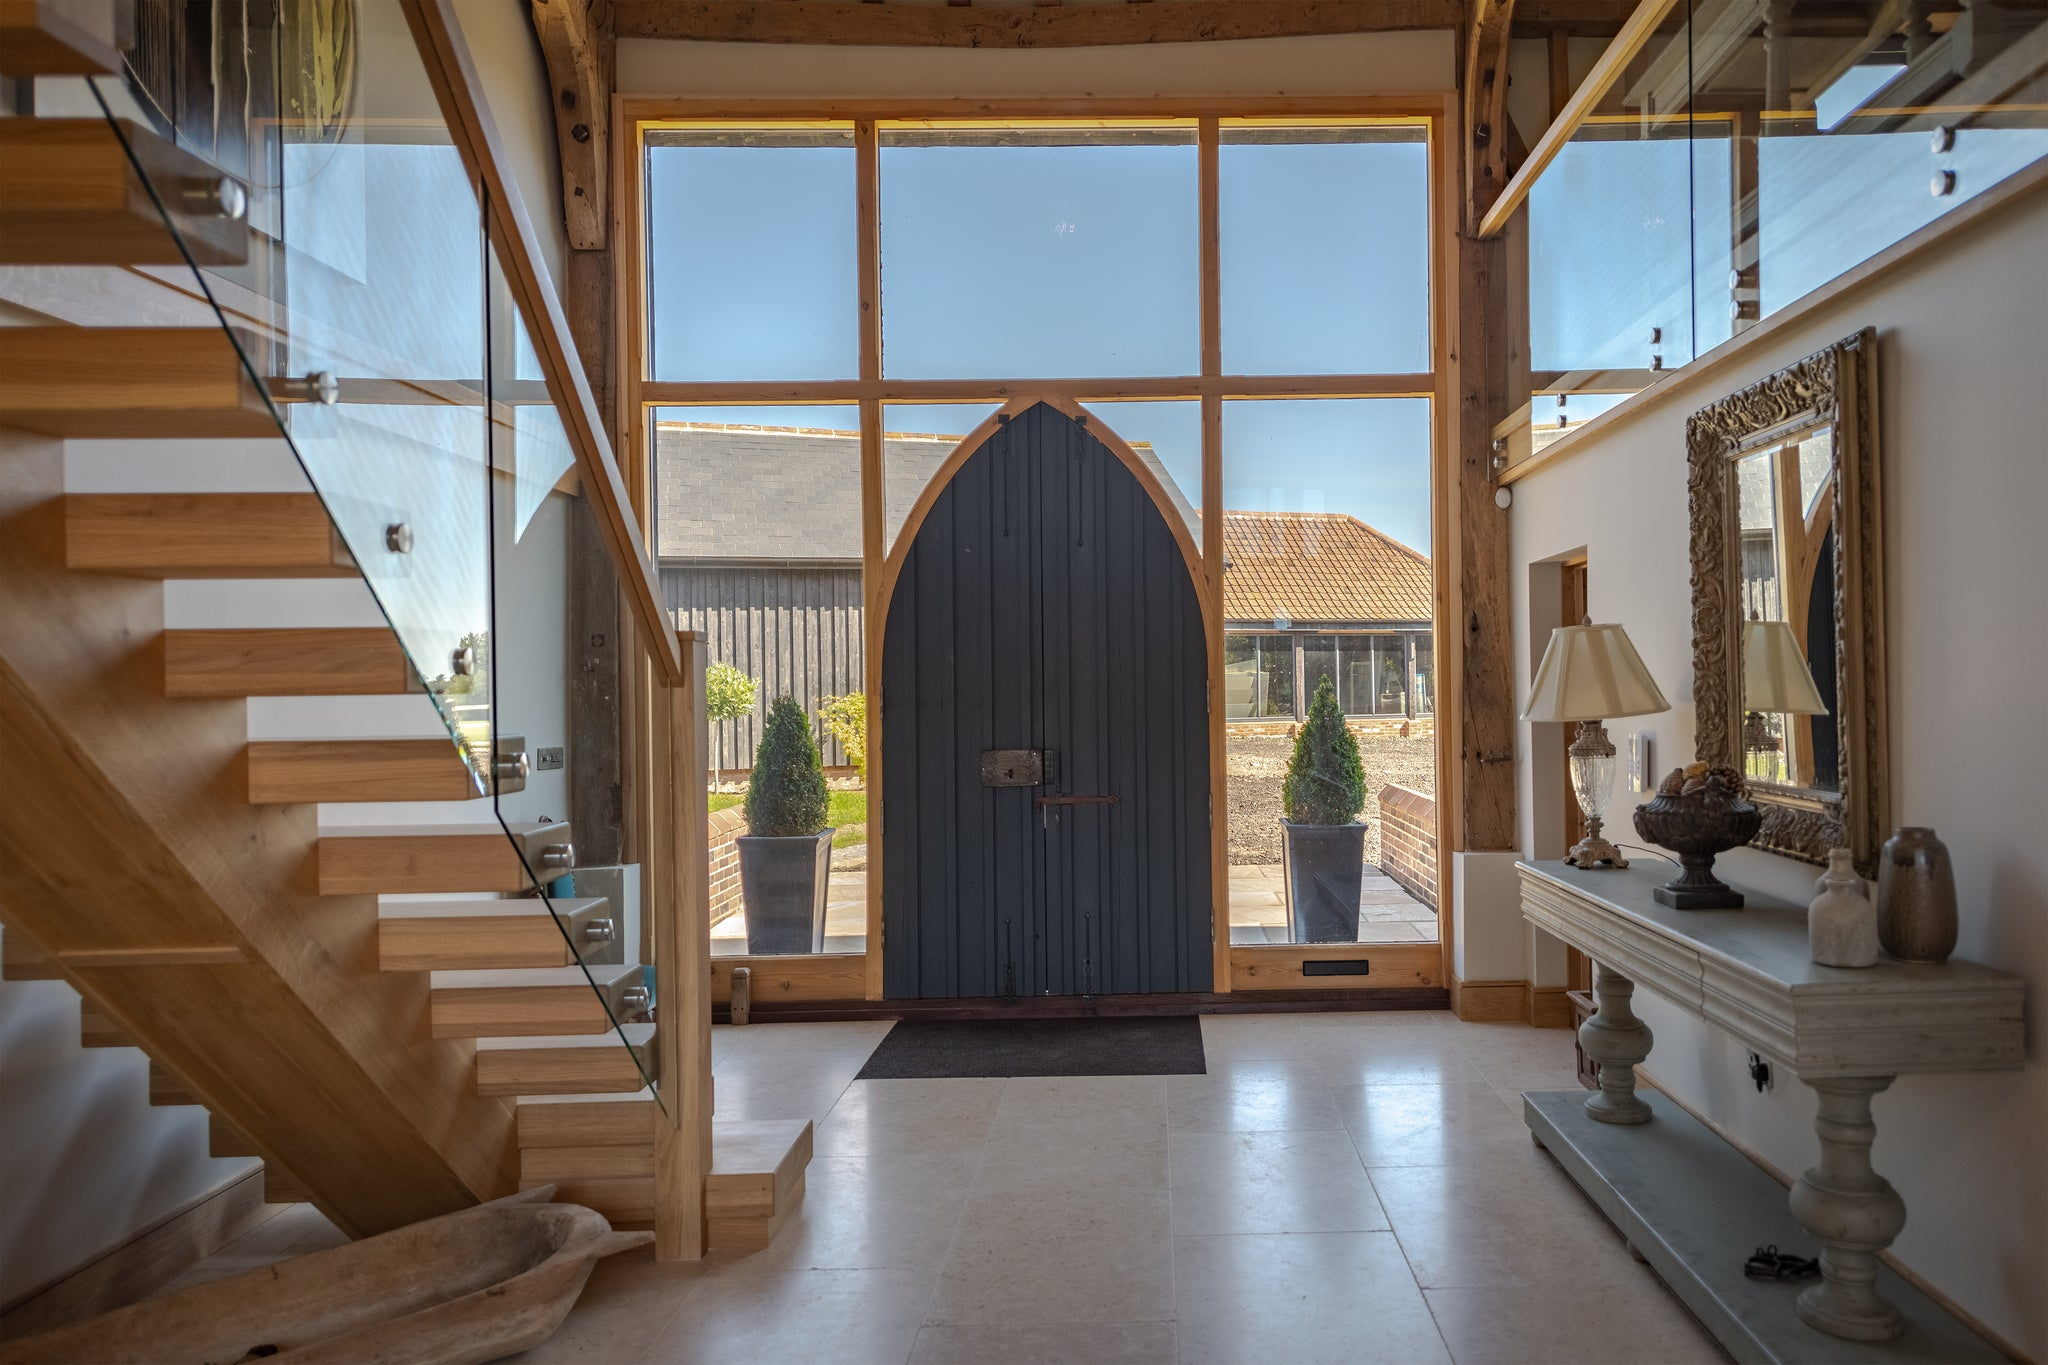 Suffolk Barn Conversion - Inspiring Home Design (Part II)